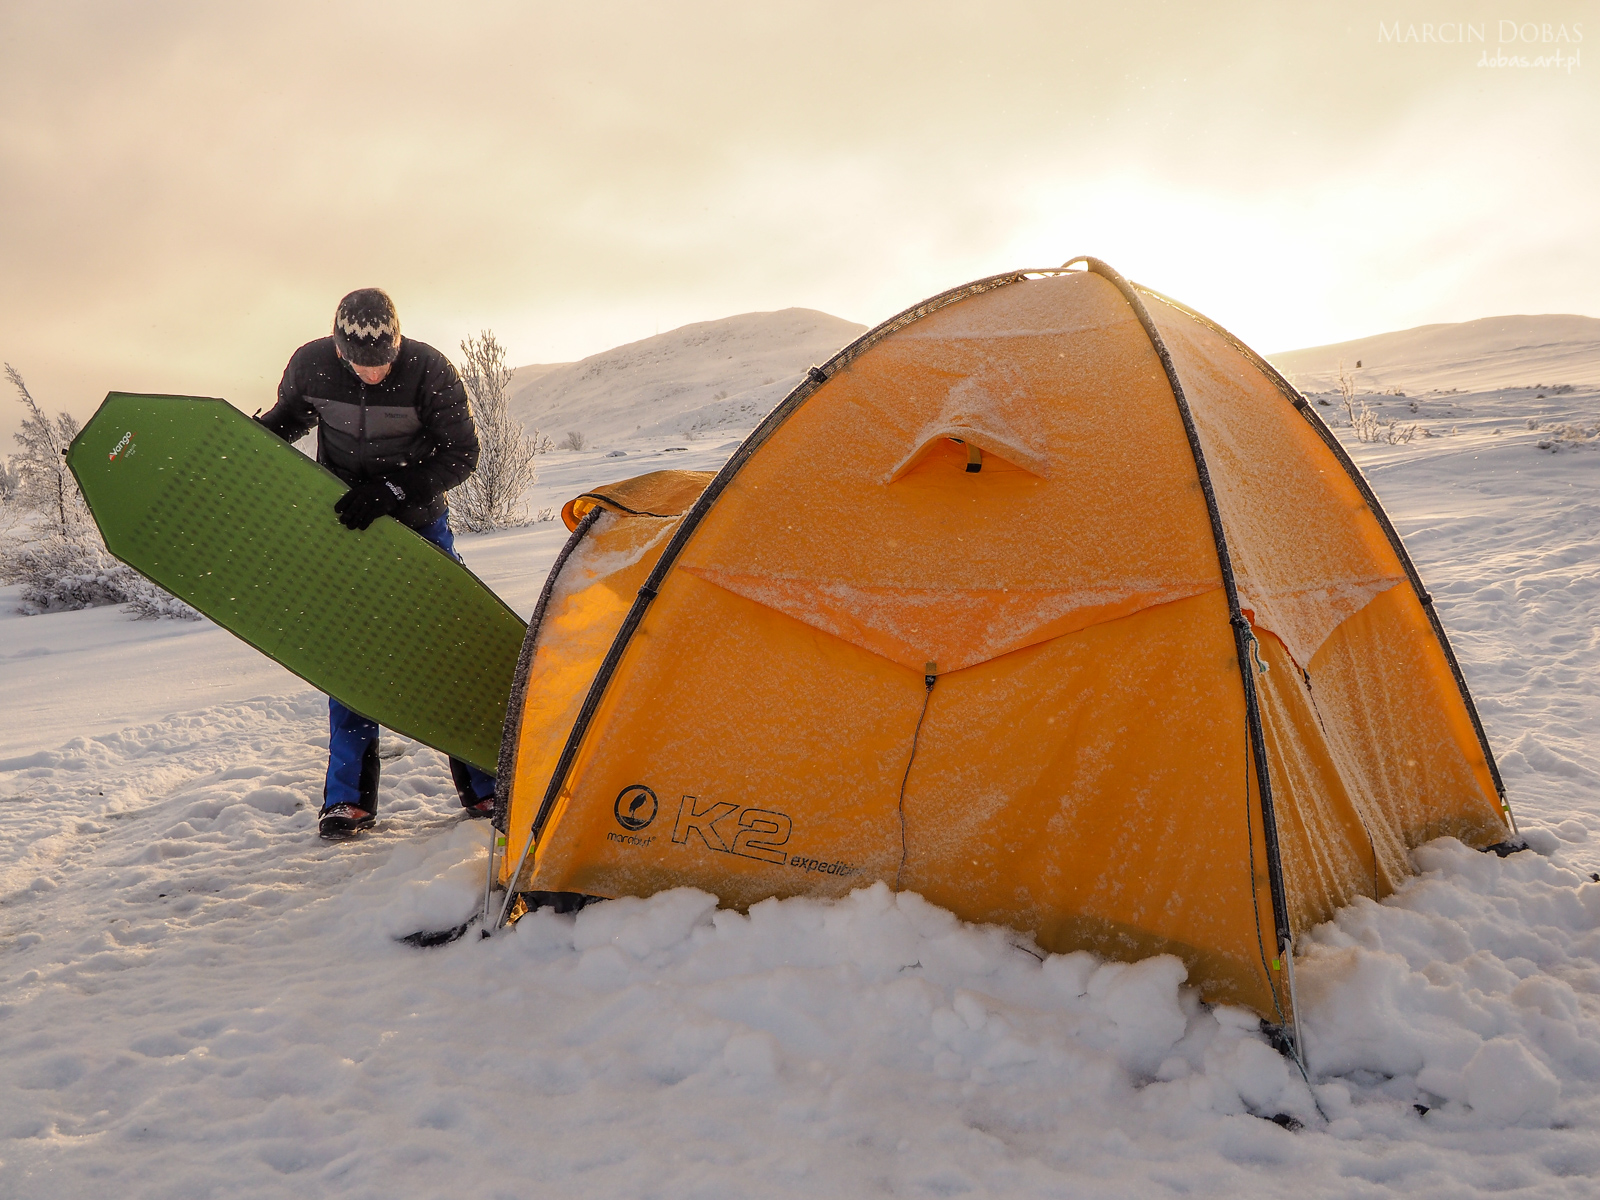 namiot Marabut K2 expedition i mata Vango Ultralite